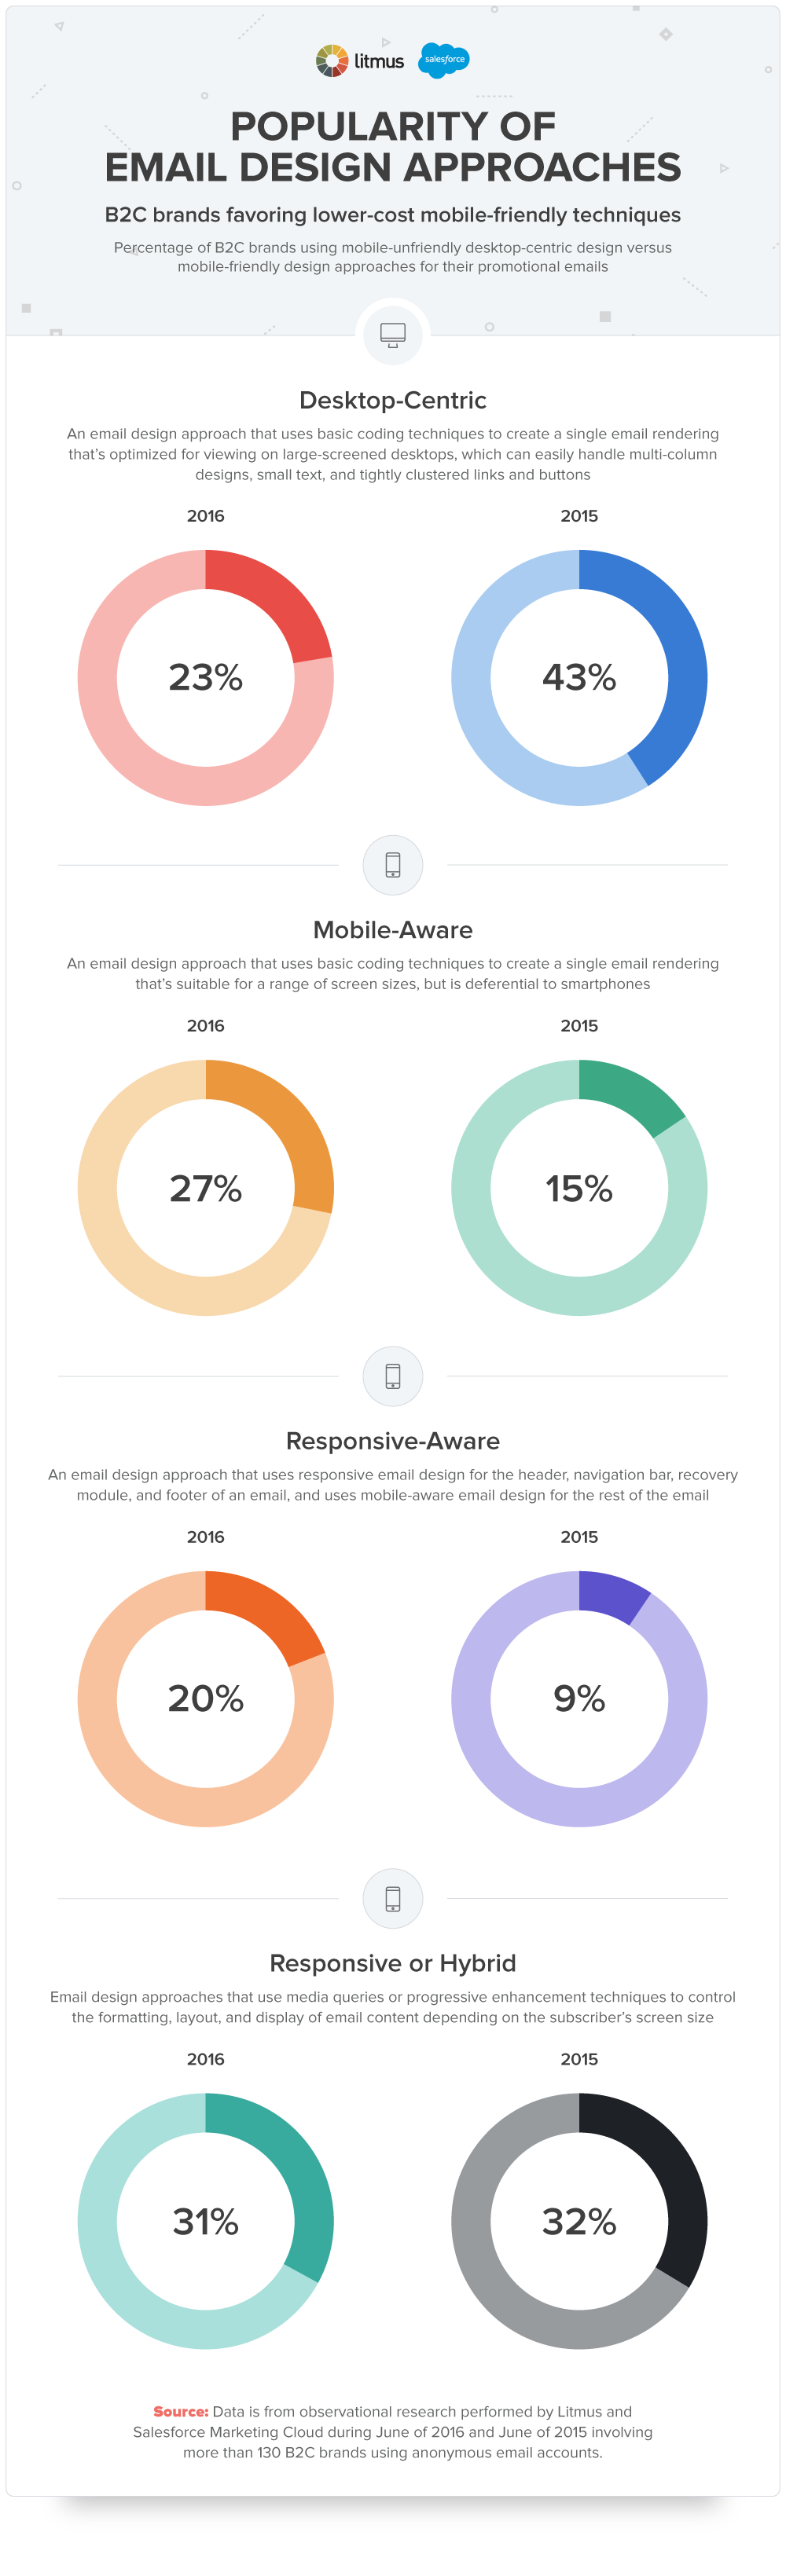 [CHART]Popularity-of-Email-Design-Approaches